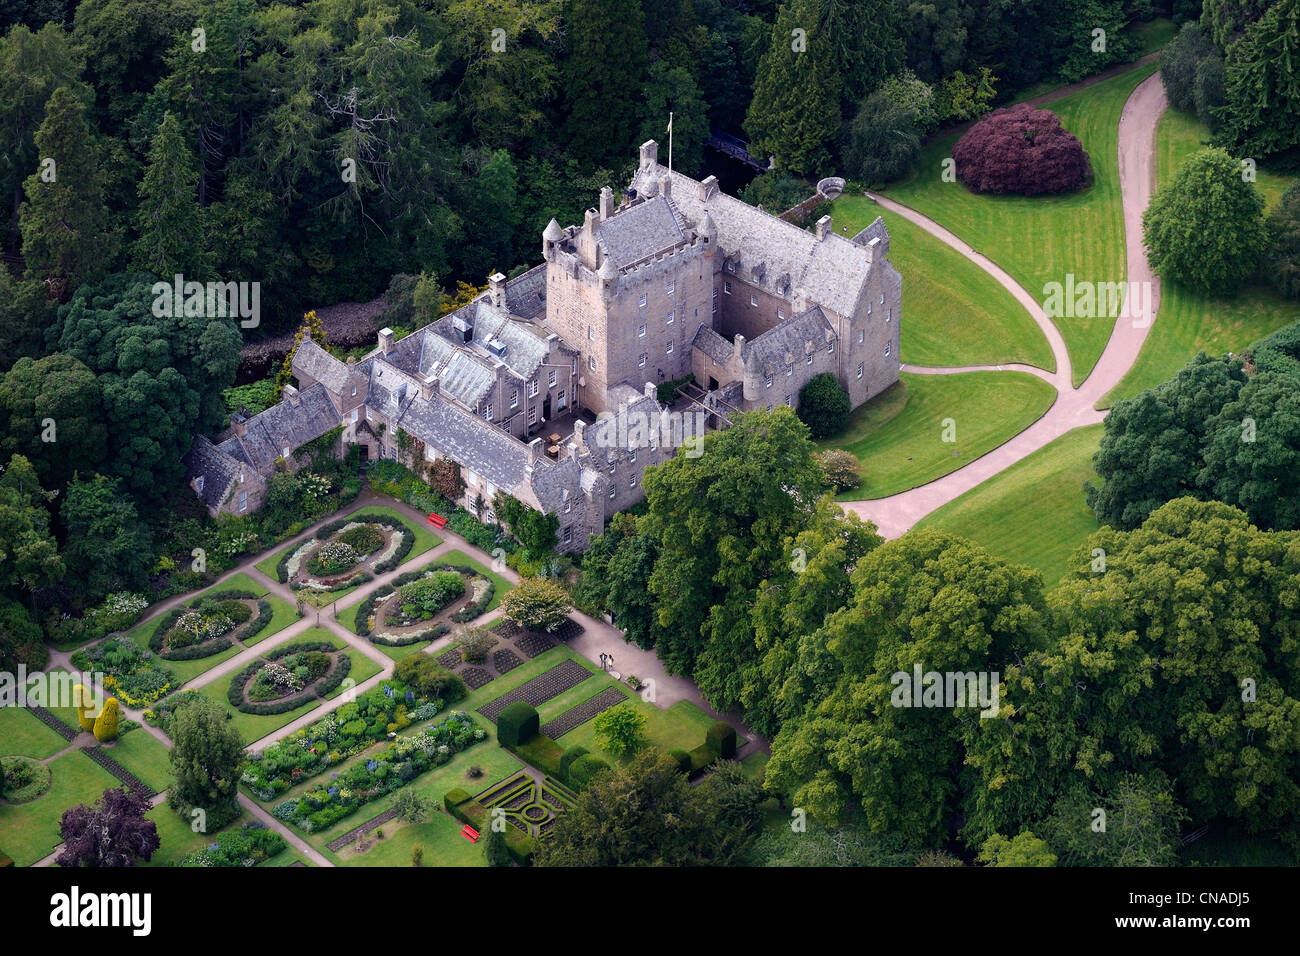 United Kingdom, Scotland, Highland, Cawdor Castle build at the end of the 14th century surrounded by gardens (aerial - Stock Image